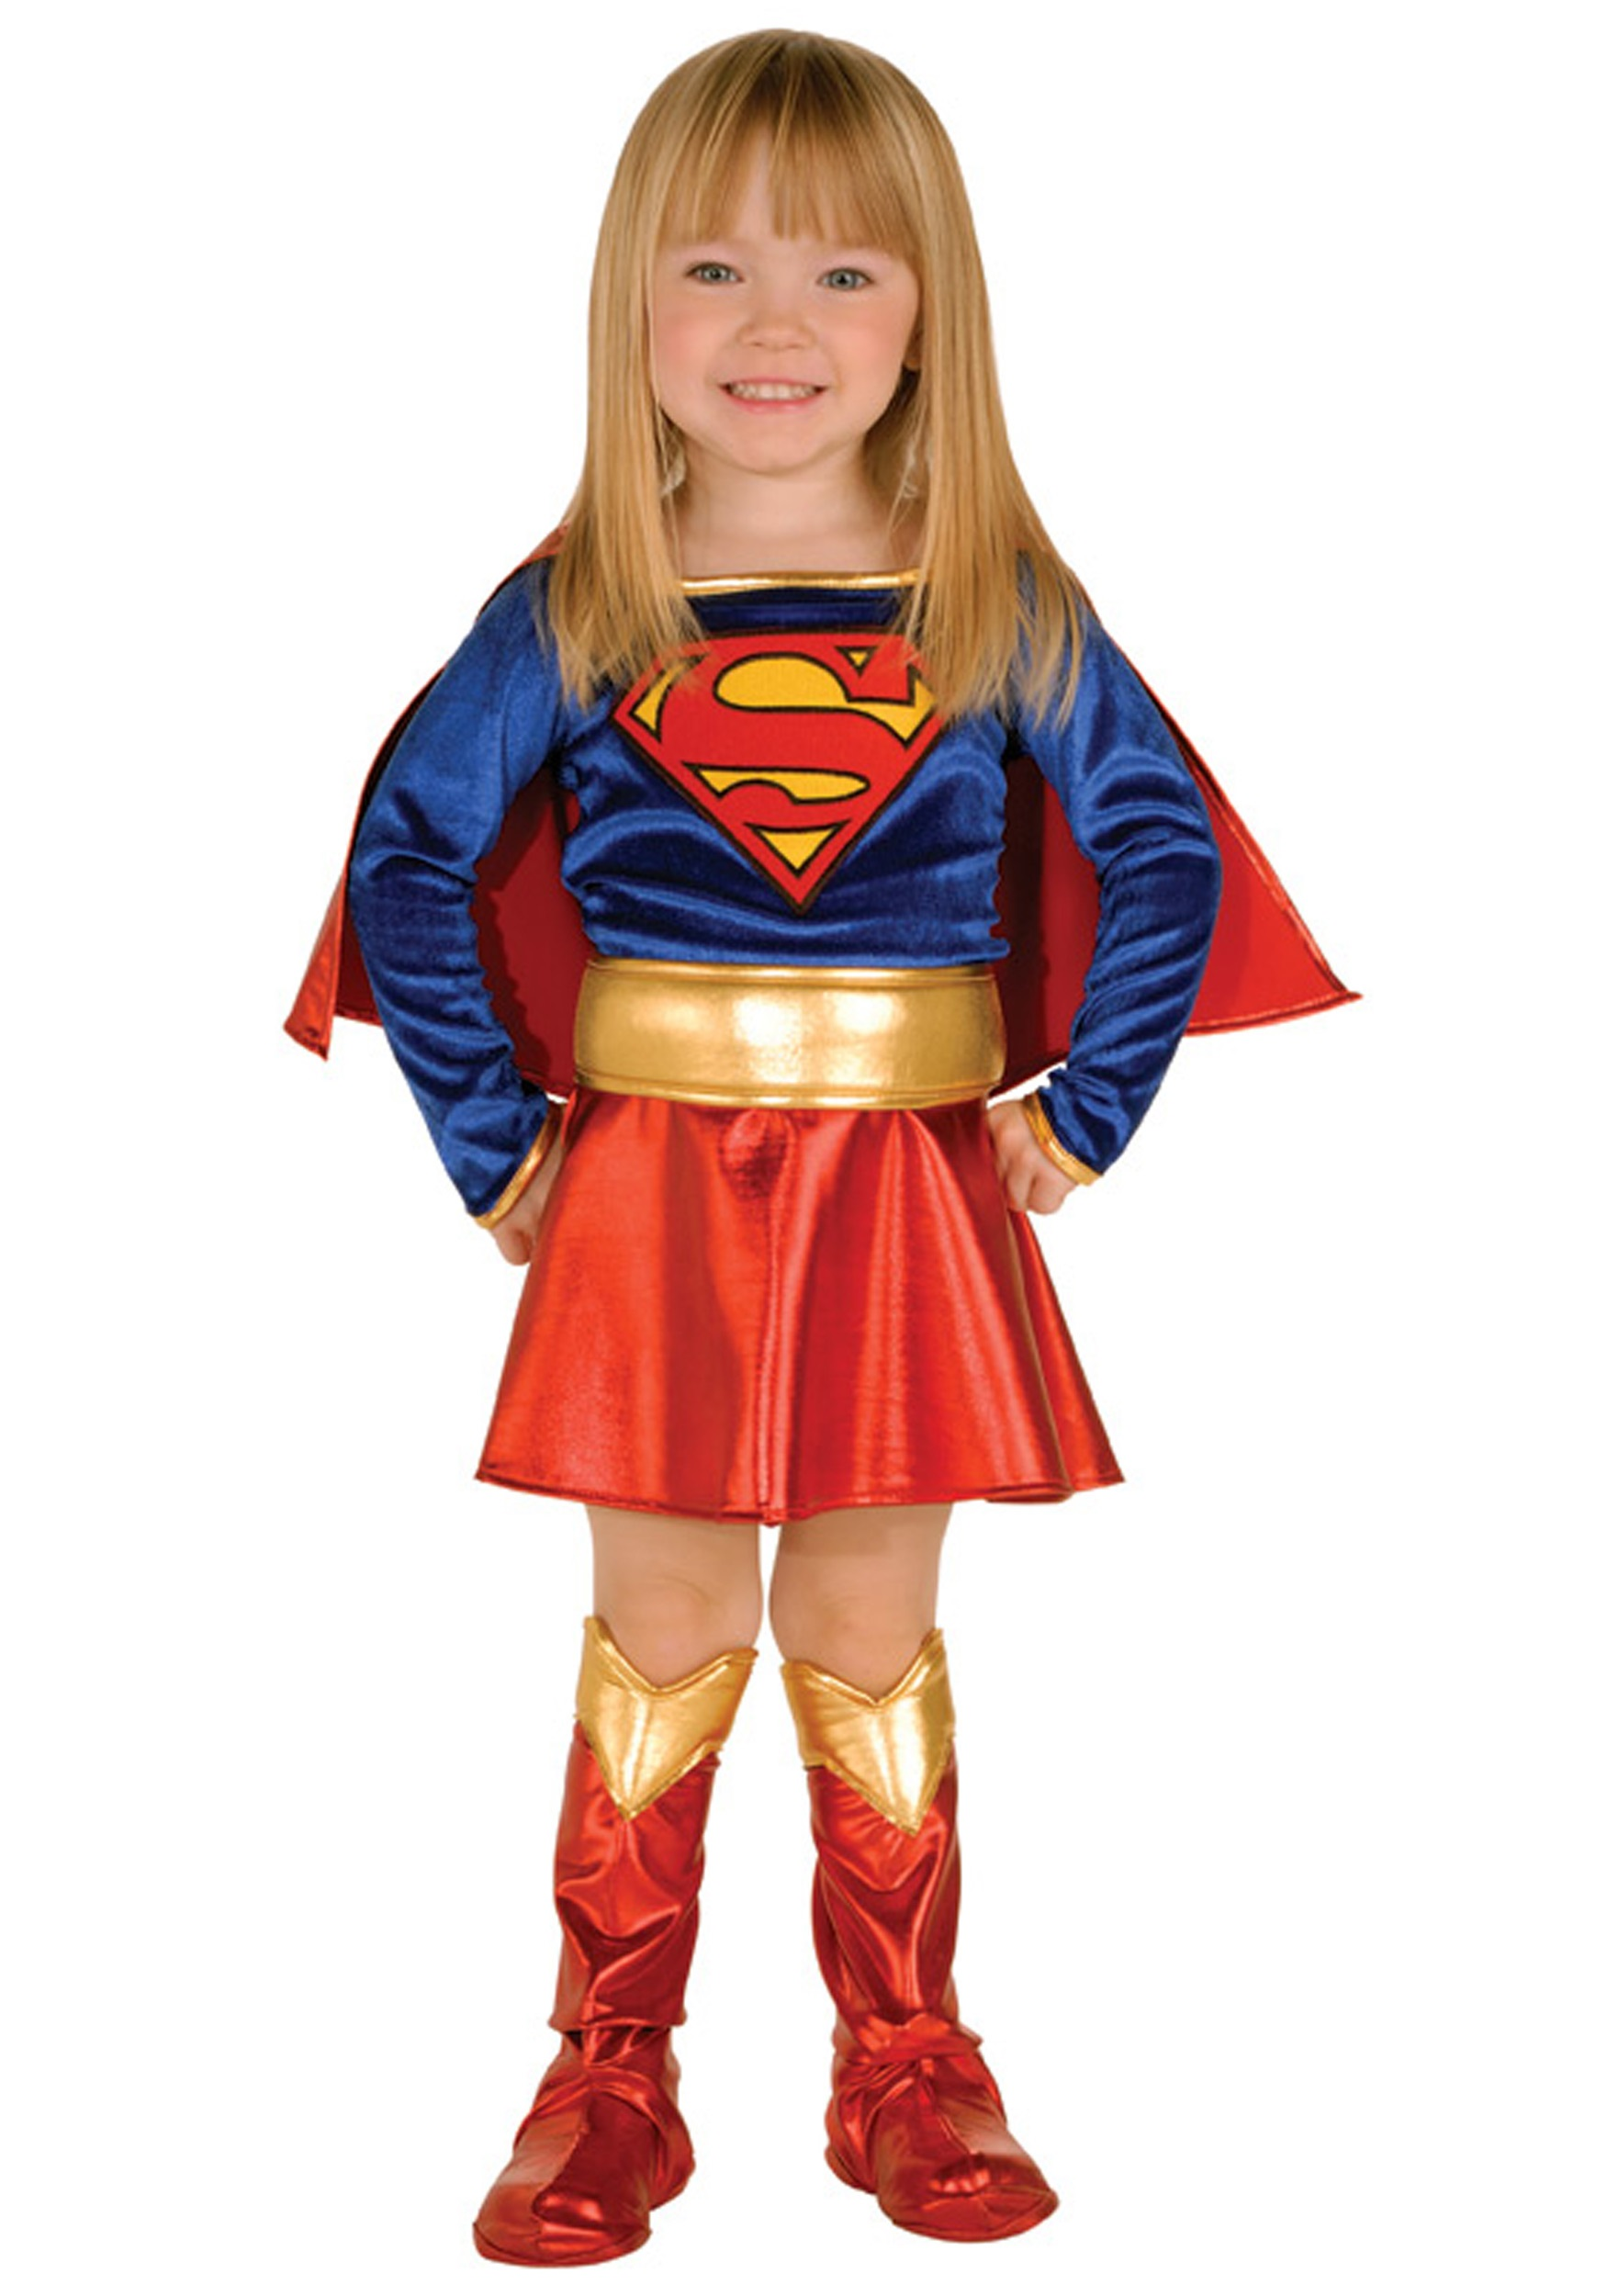 Supergirl Costume Toddler  sc 1 st  Halloween Costumes & Superwoman u0026 Supergirl Costumes - Adult Toddler Supergirl Costume